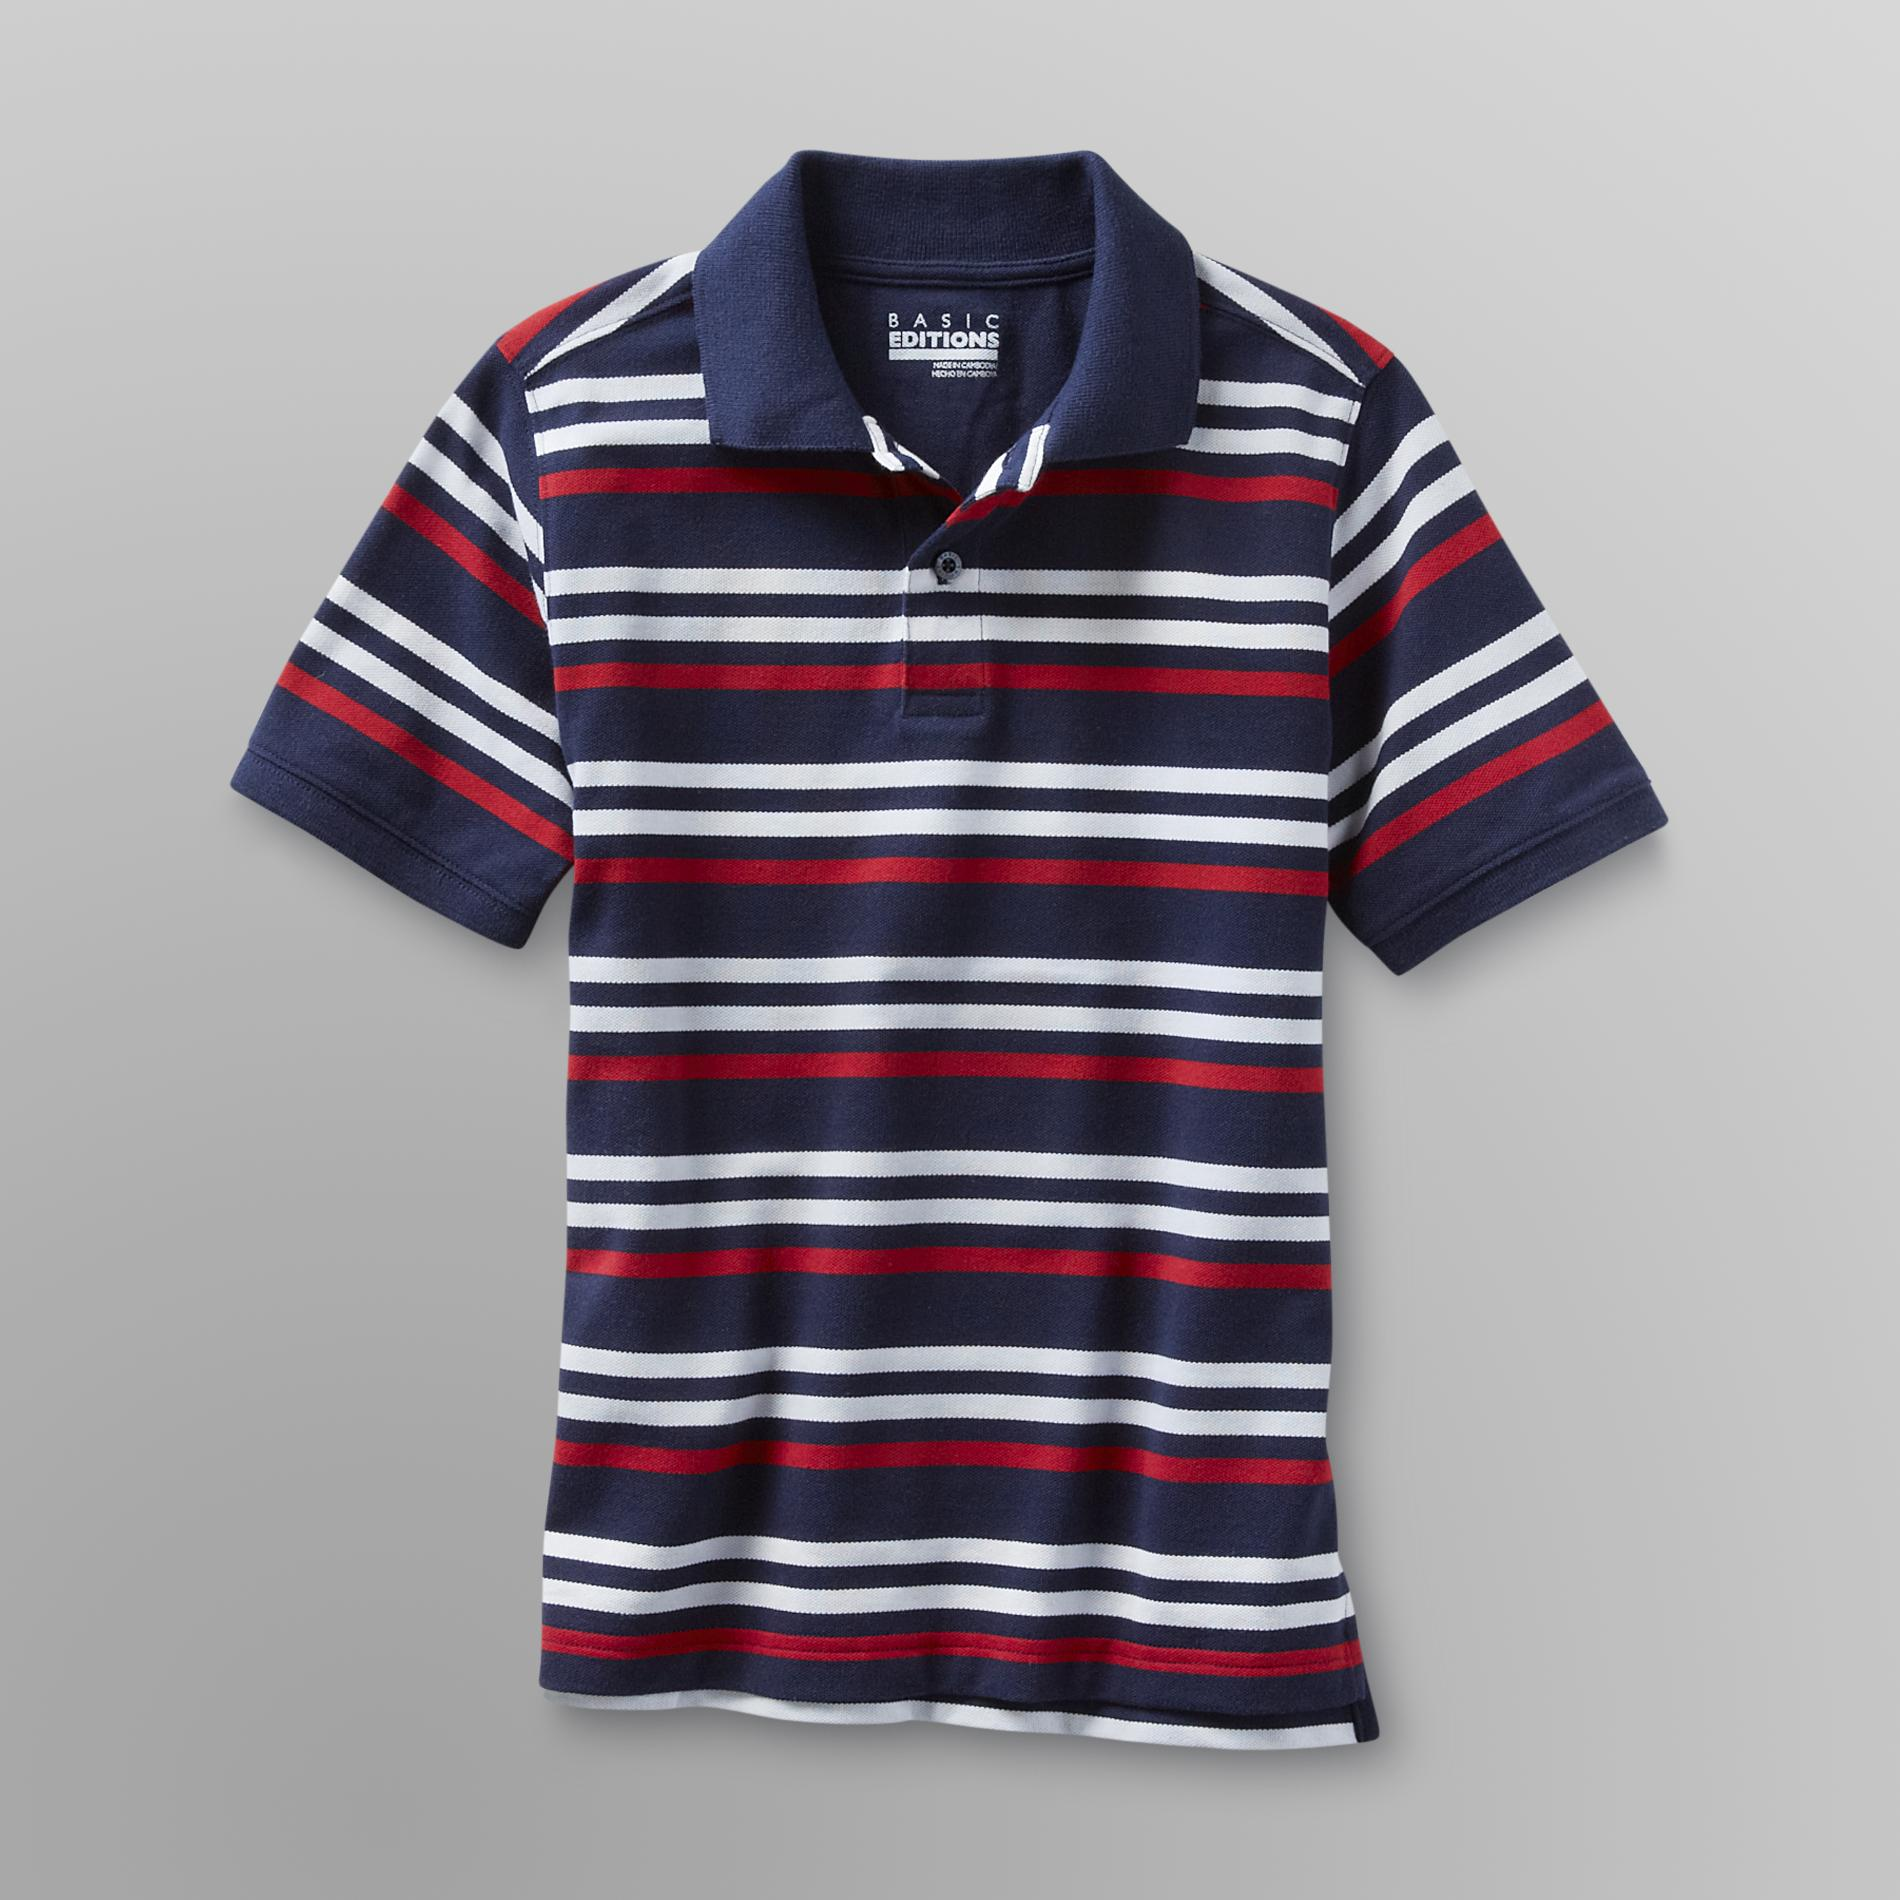 Basic Editions  Boy's Mesh Polo Shirt -